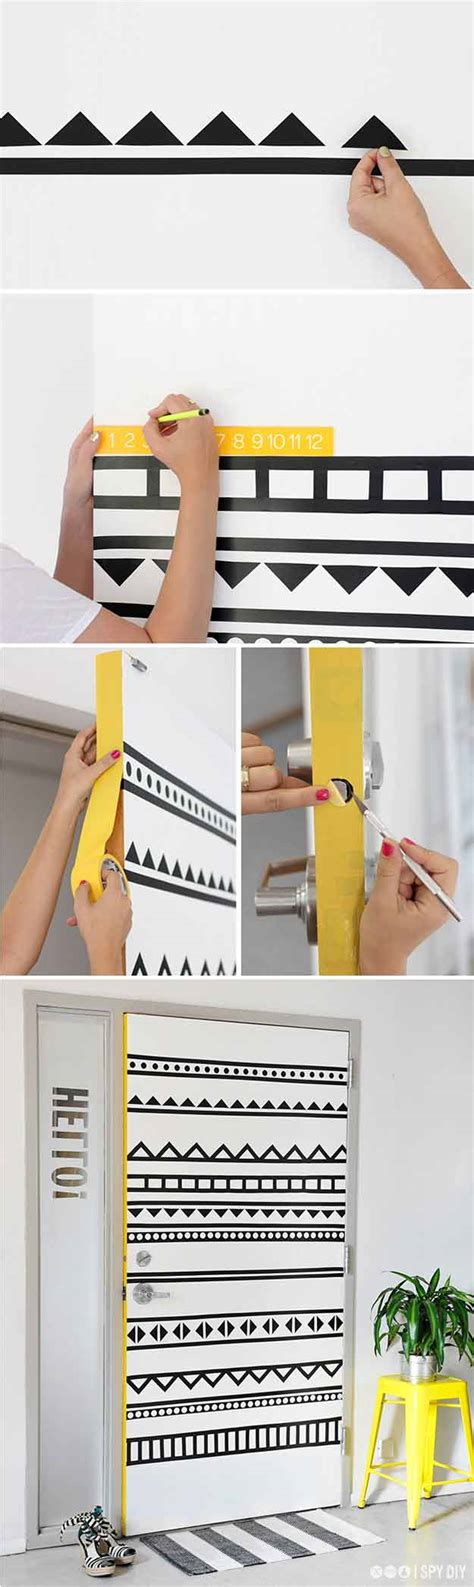 diy bedroom crafts diy ideas for teen bedrooms diy crafts ideas magazine